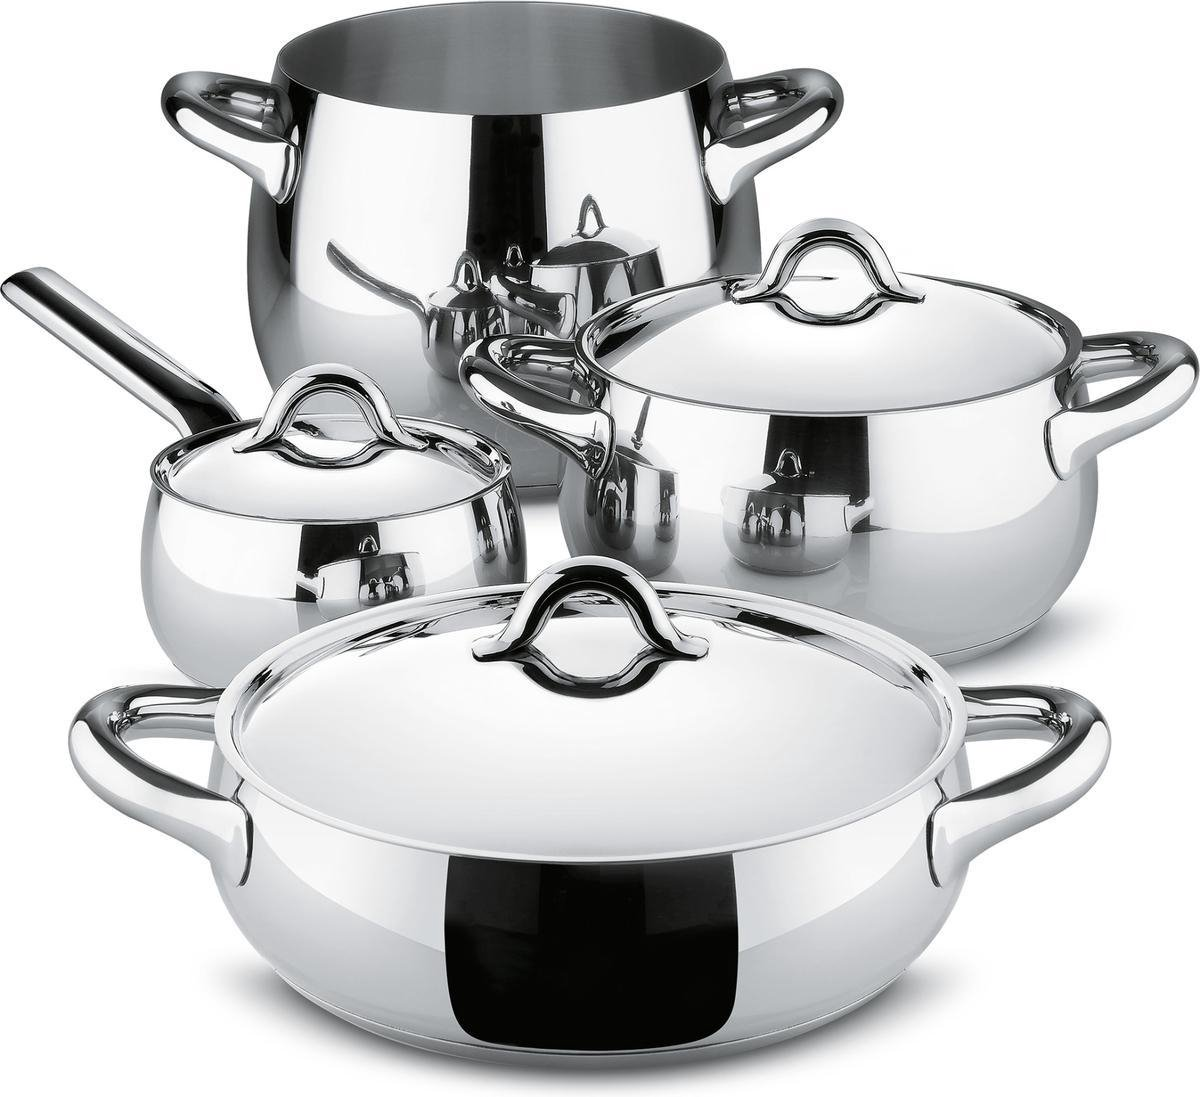 Afbeelding van product Alessi Mami Pannenset - 4-delig - RVS